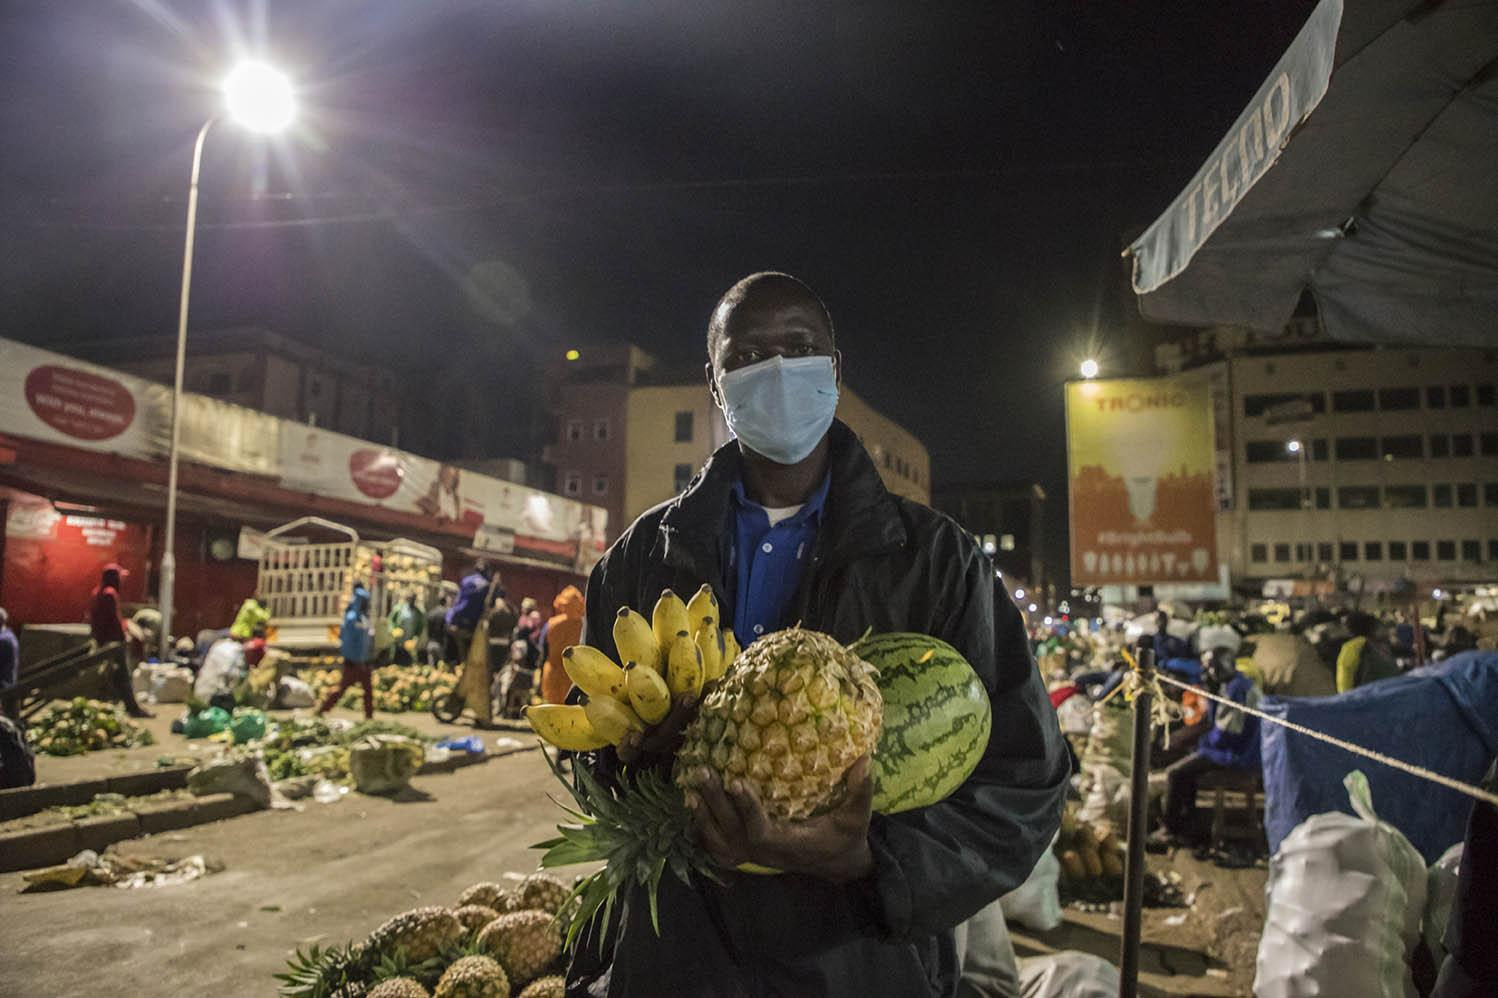 Charles Ongom, a security guard of Nakasero Market, buys fruit before his night shift on 10 April 2020. Security was heavily deployed in most of the markets in Kampala to ensure that vendors and their property are safe in the night.